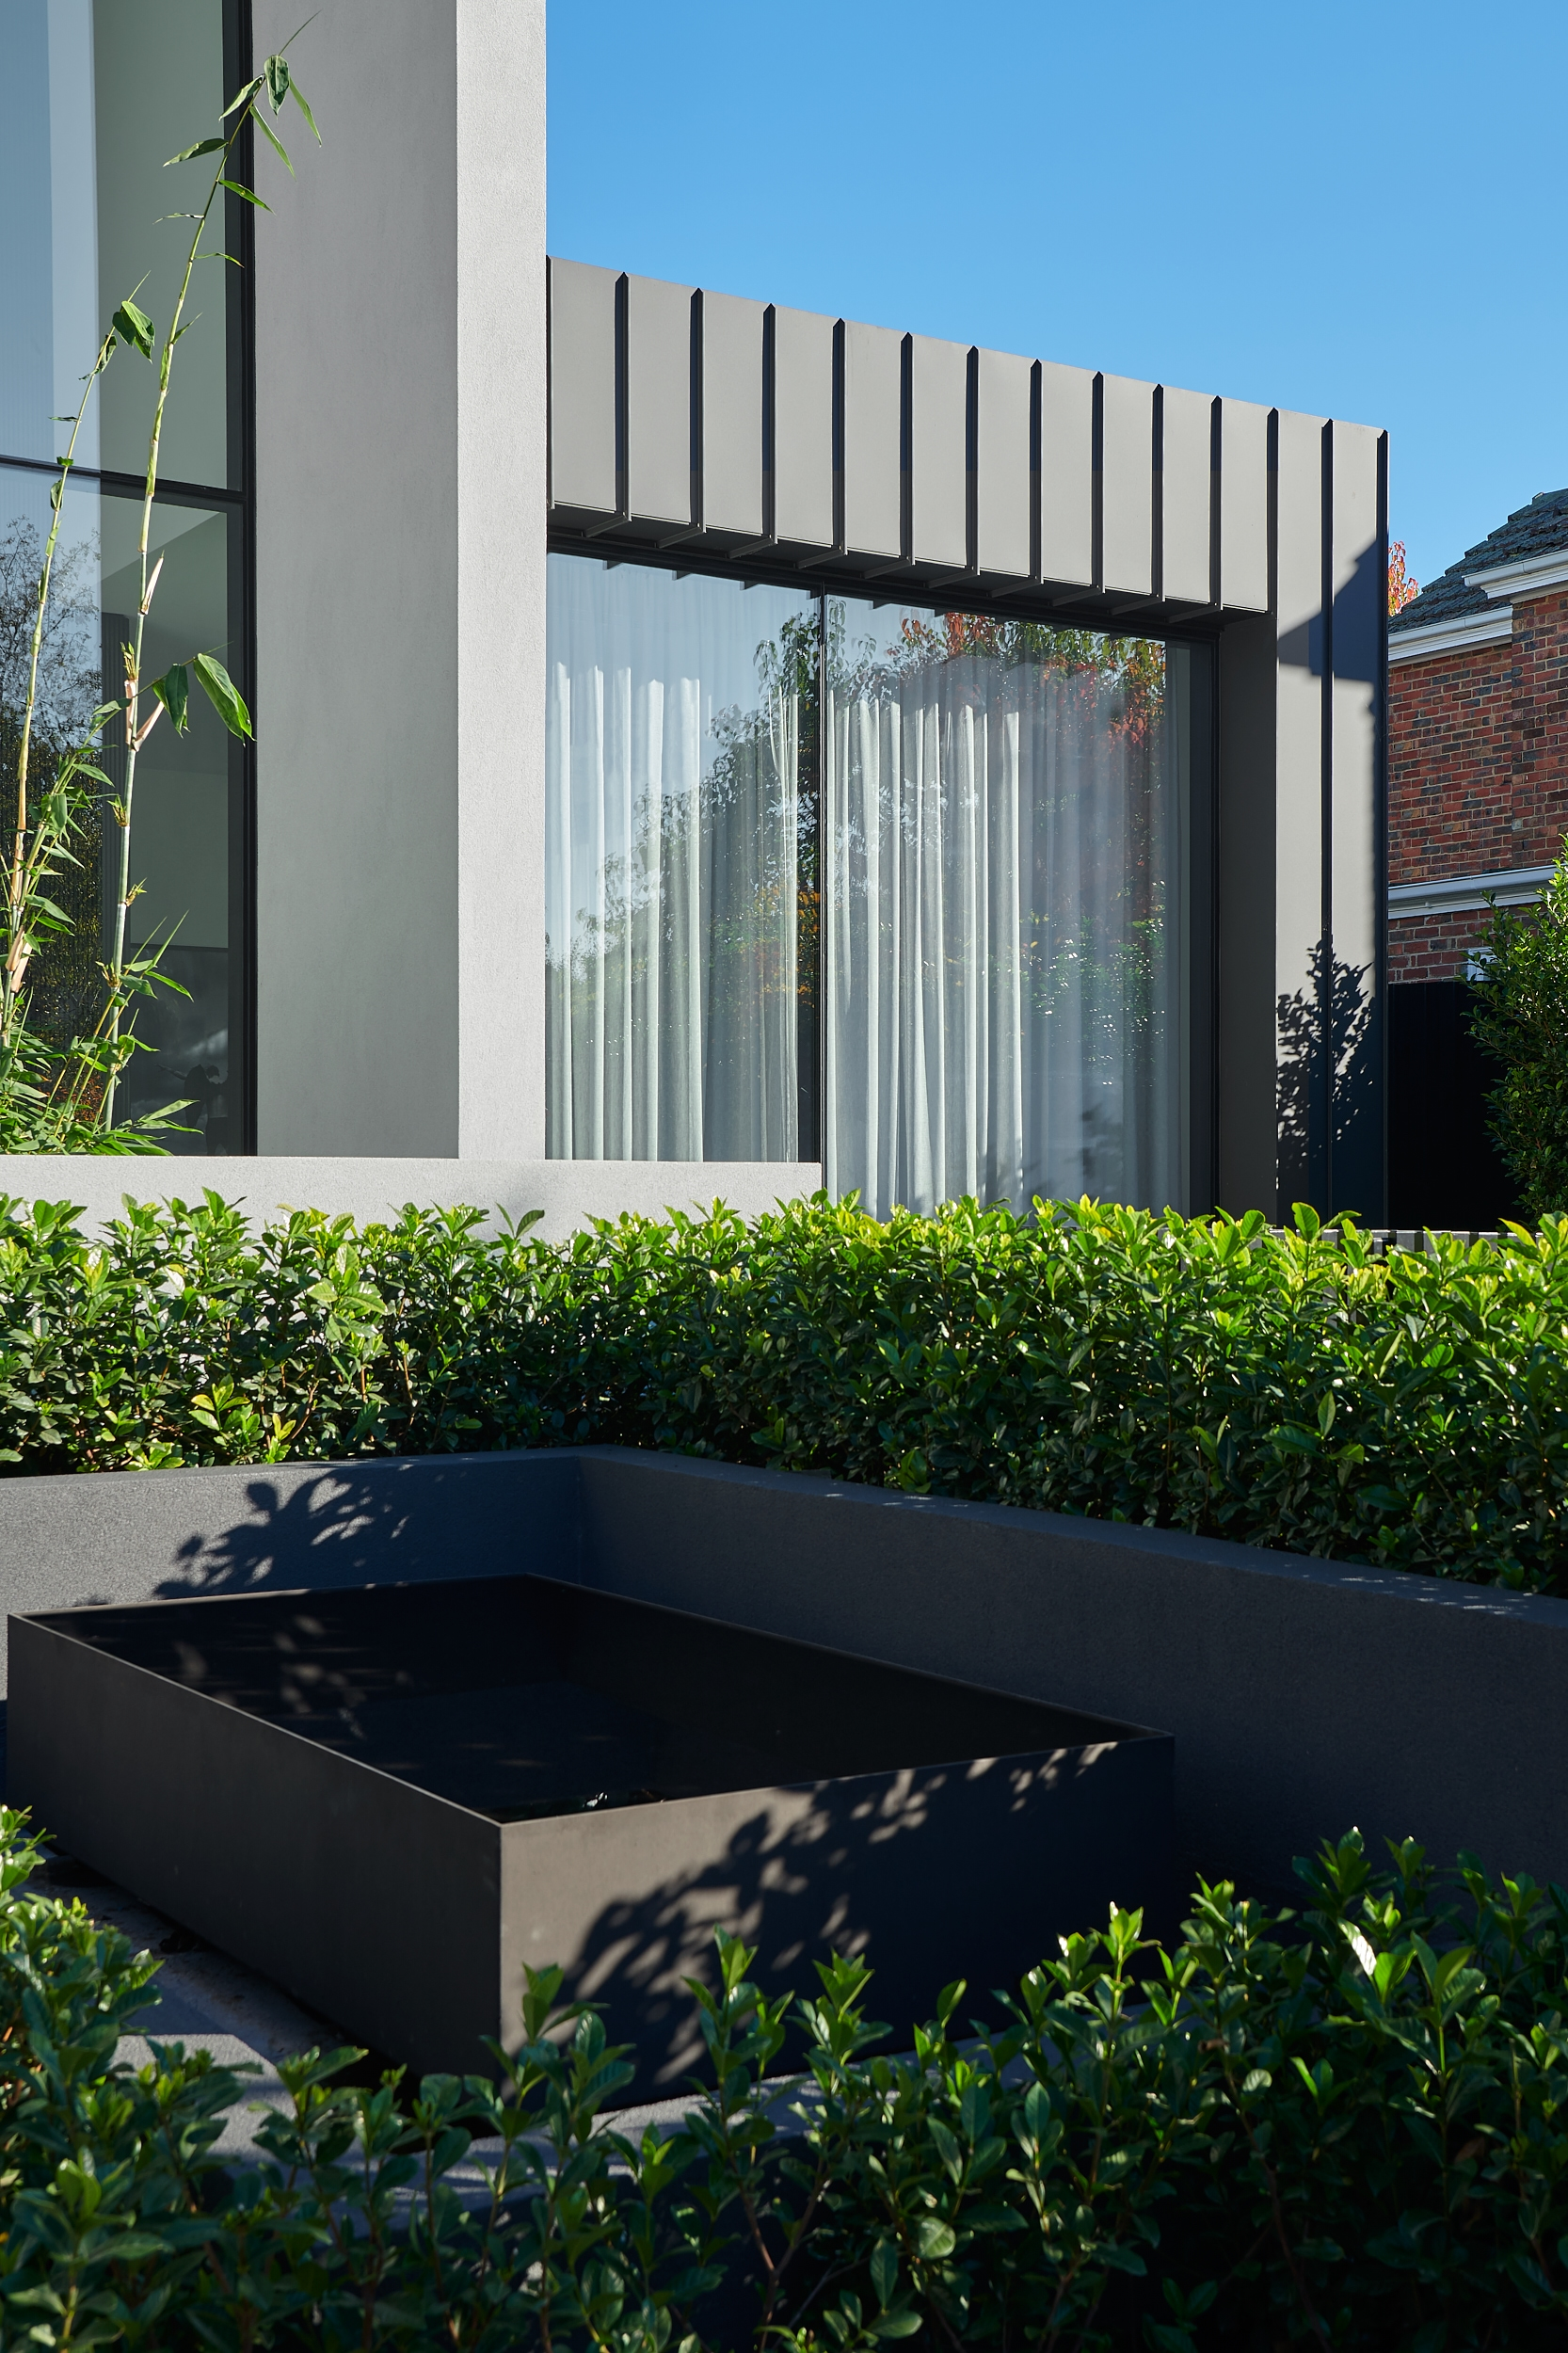 Bramley Court, a residential project whose architecture and interiors are designed by Taouk Architects